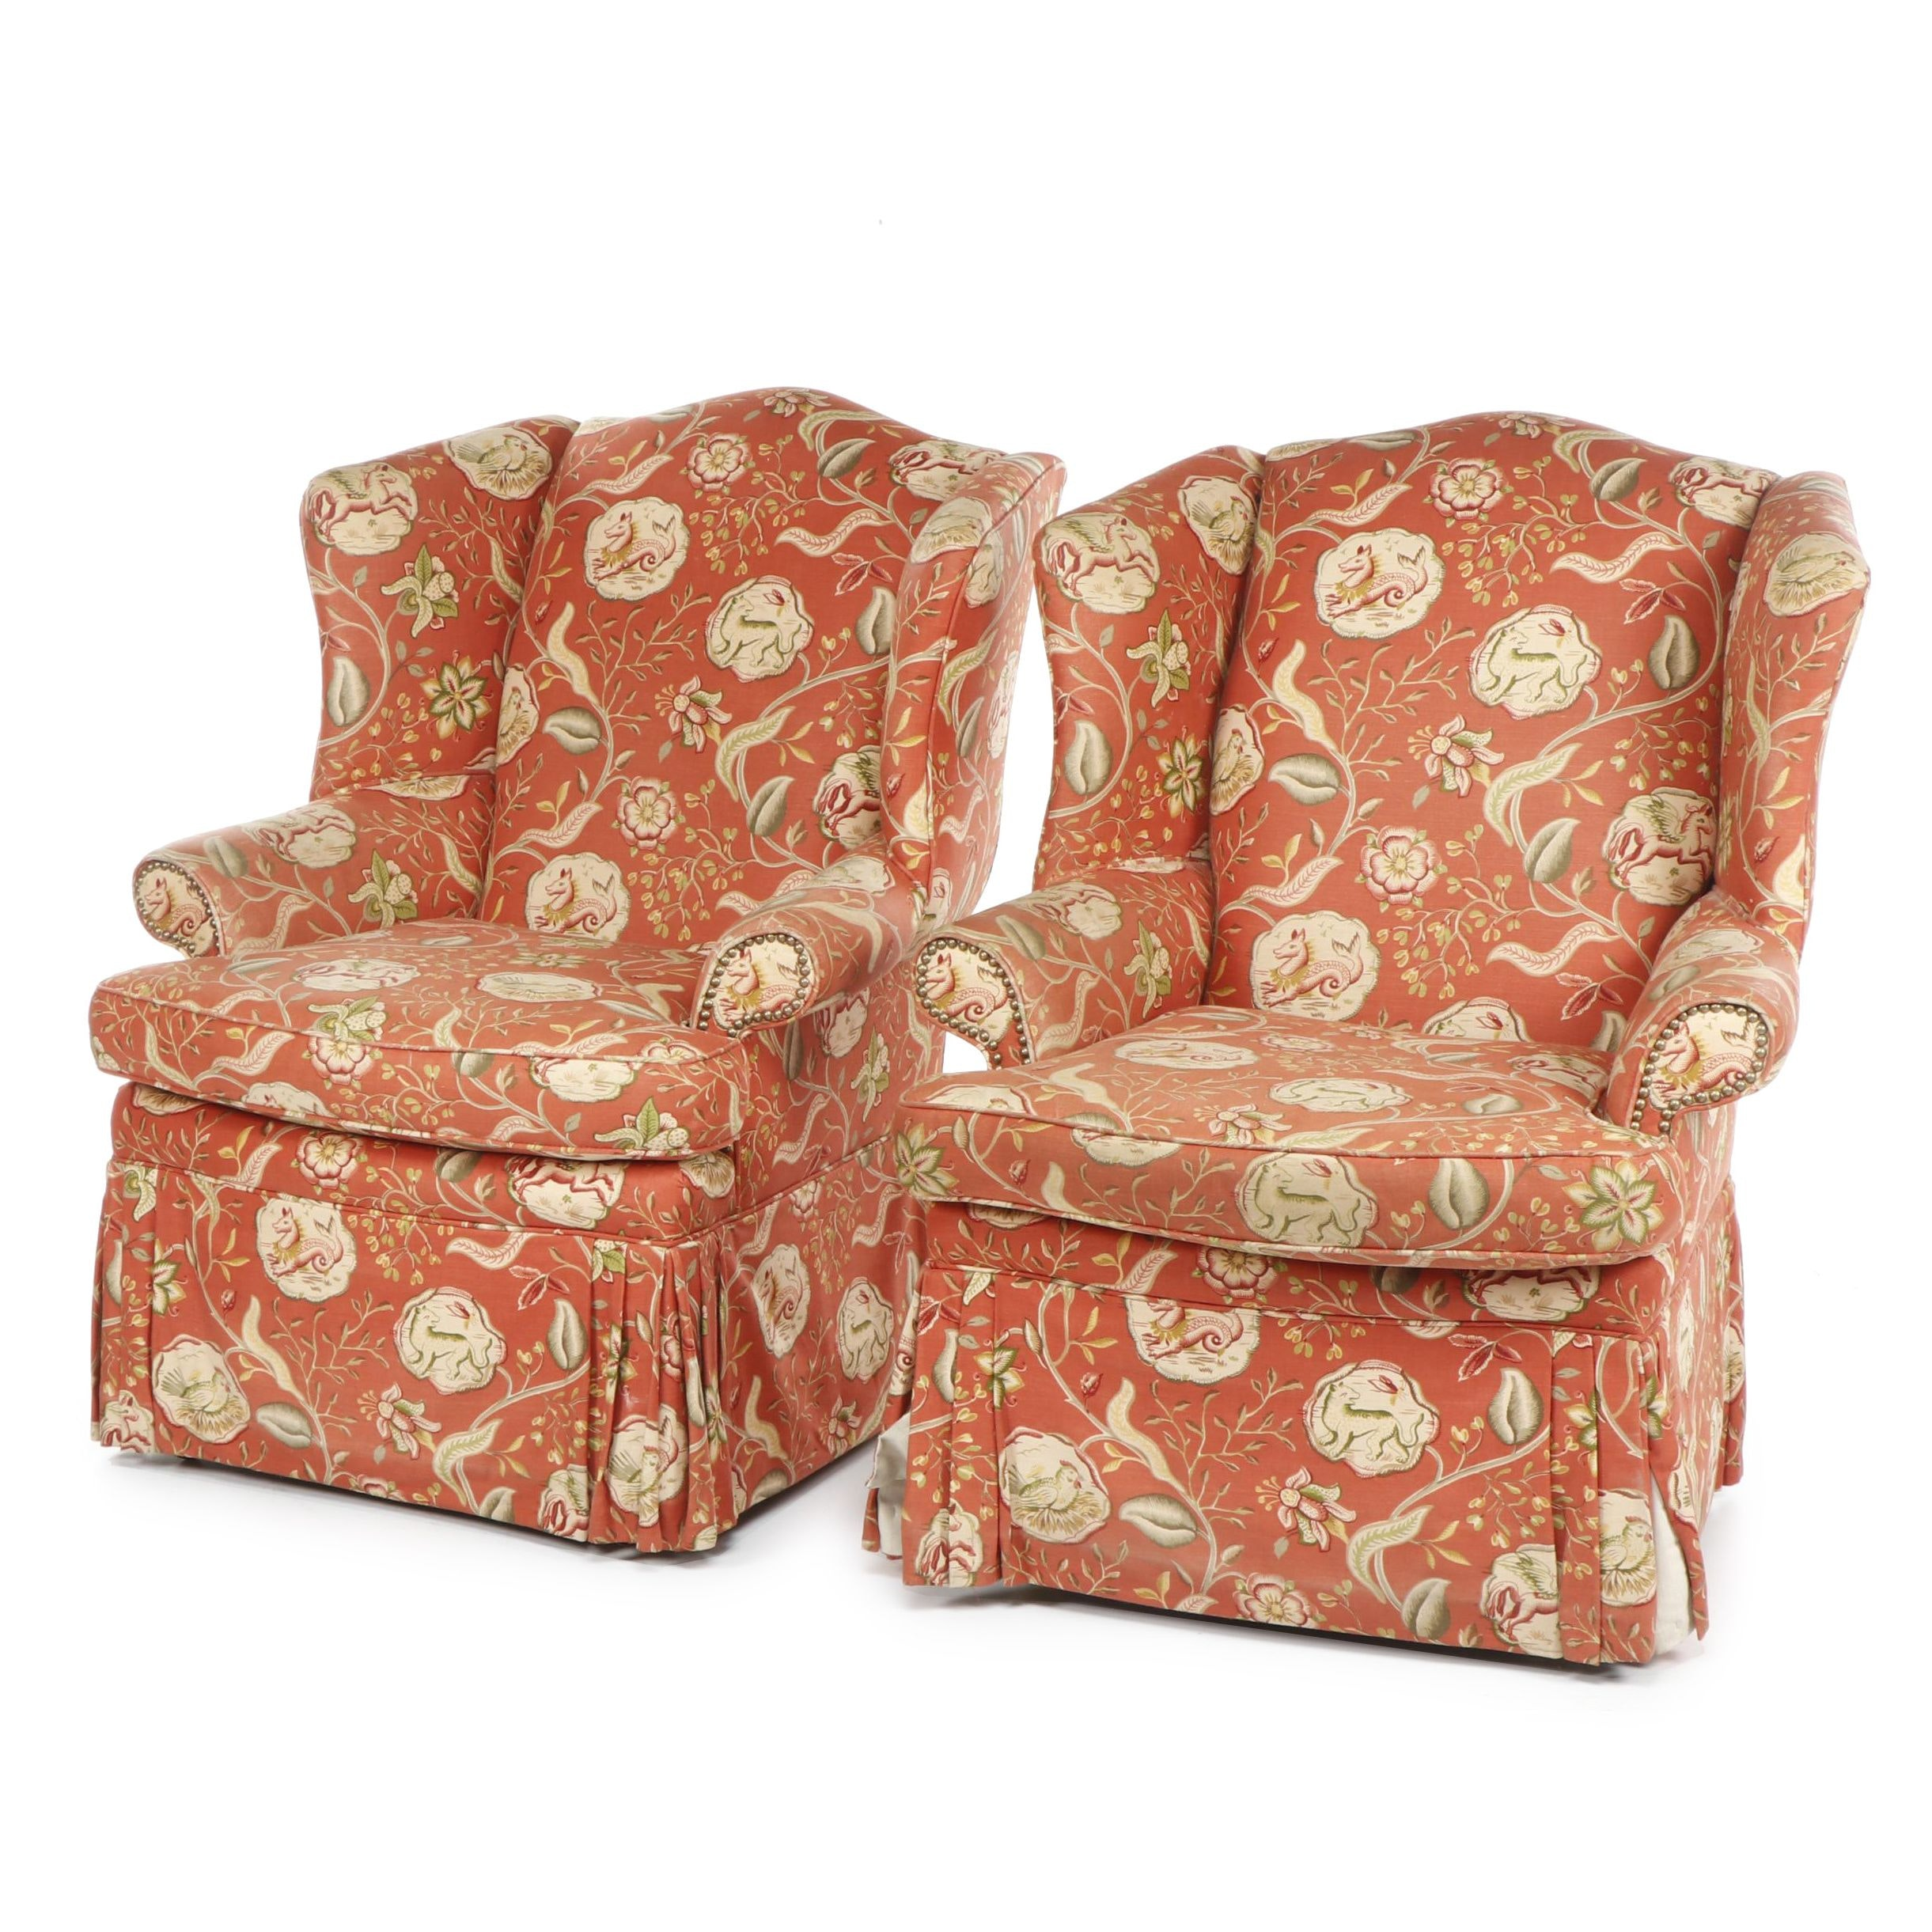 Upholstered Wing Back Armchairs on Casters